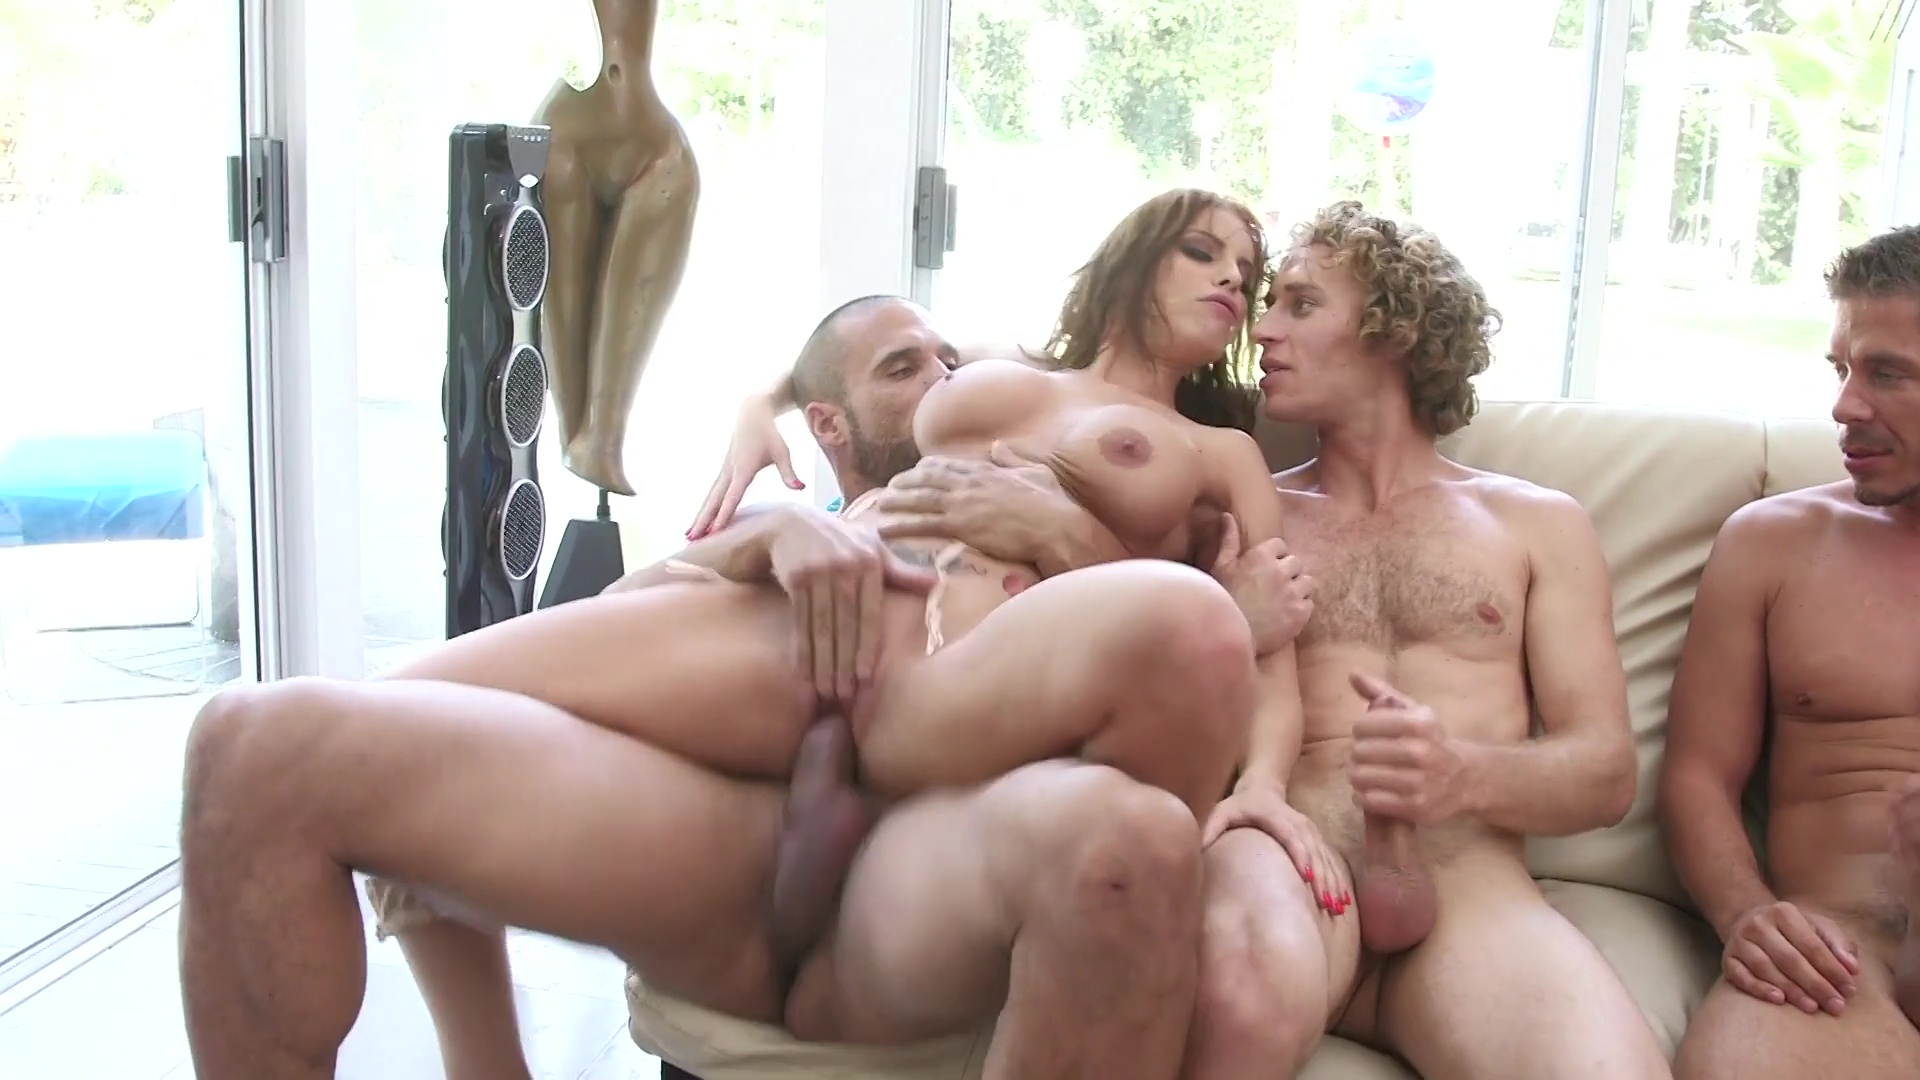 Gang fuck my wife videos